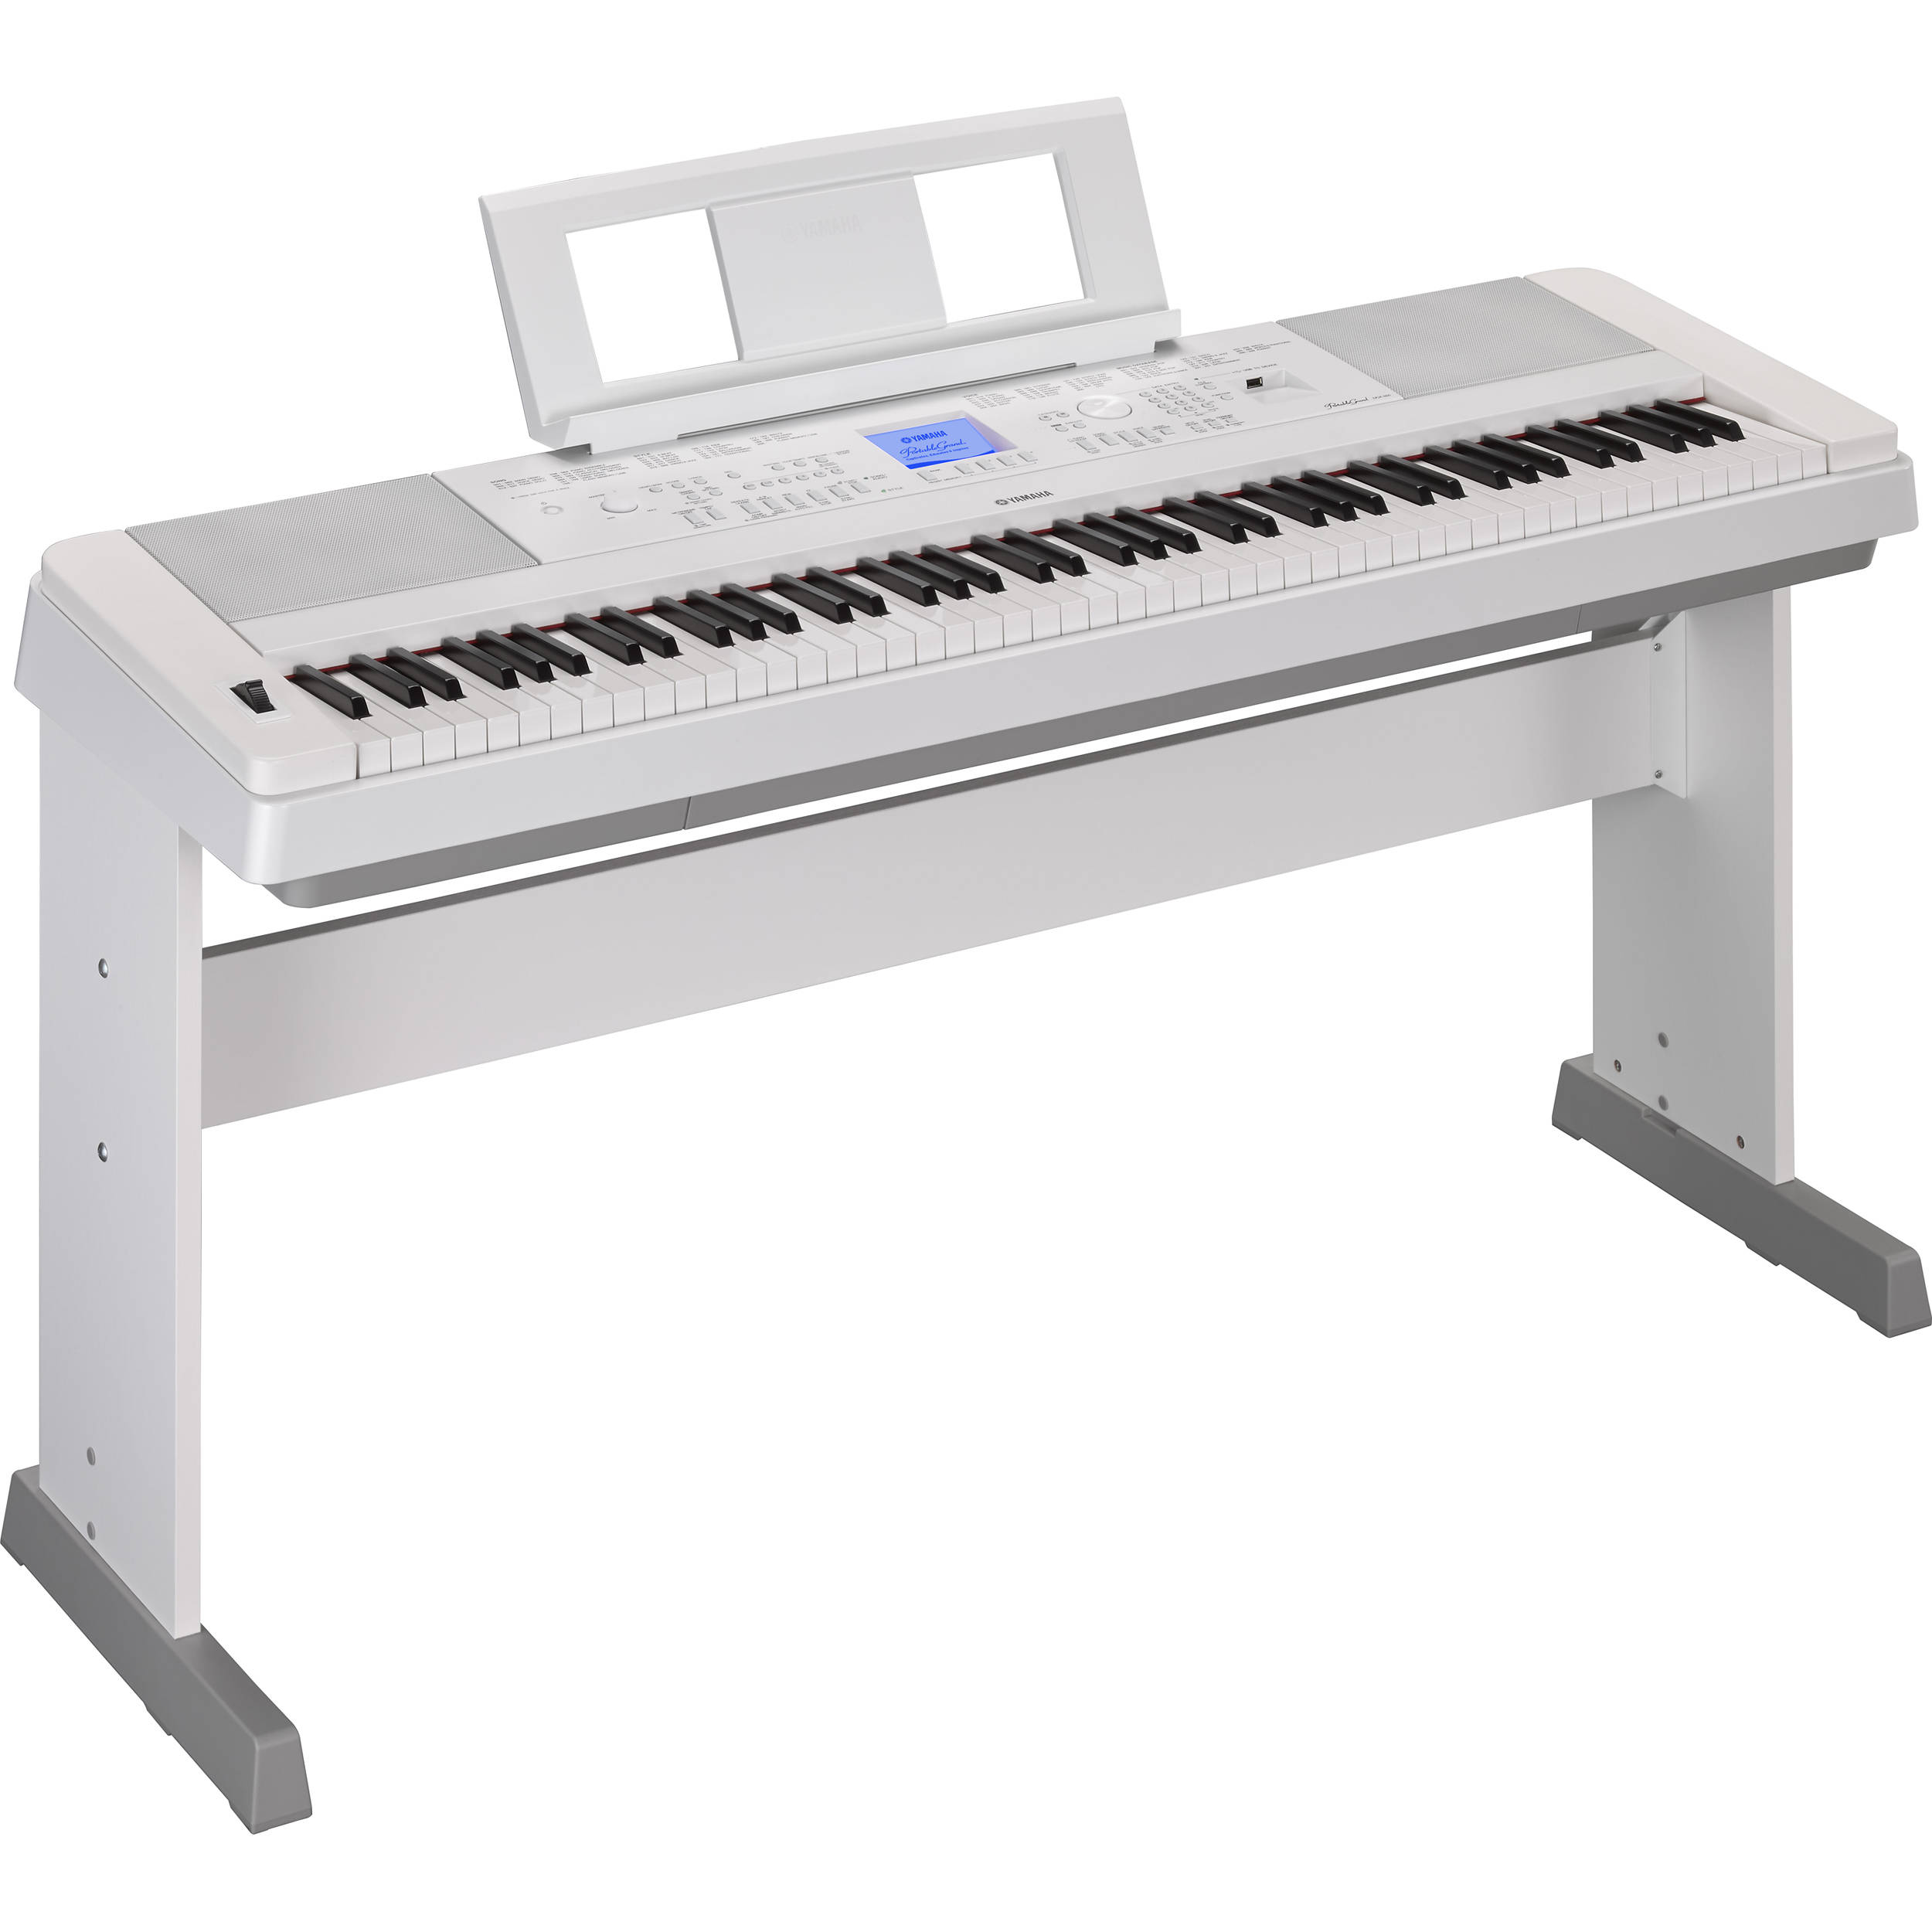 yamaha dgx 660 portable grand digital piano white dgx660wh b h. Black Bedroom Furniture Sets. Home Design Ideas